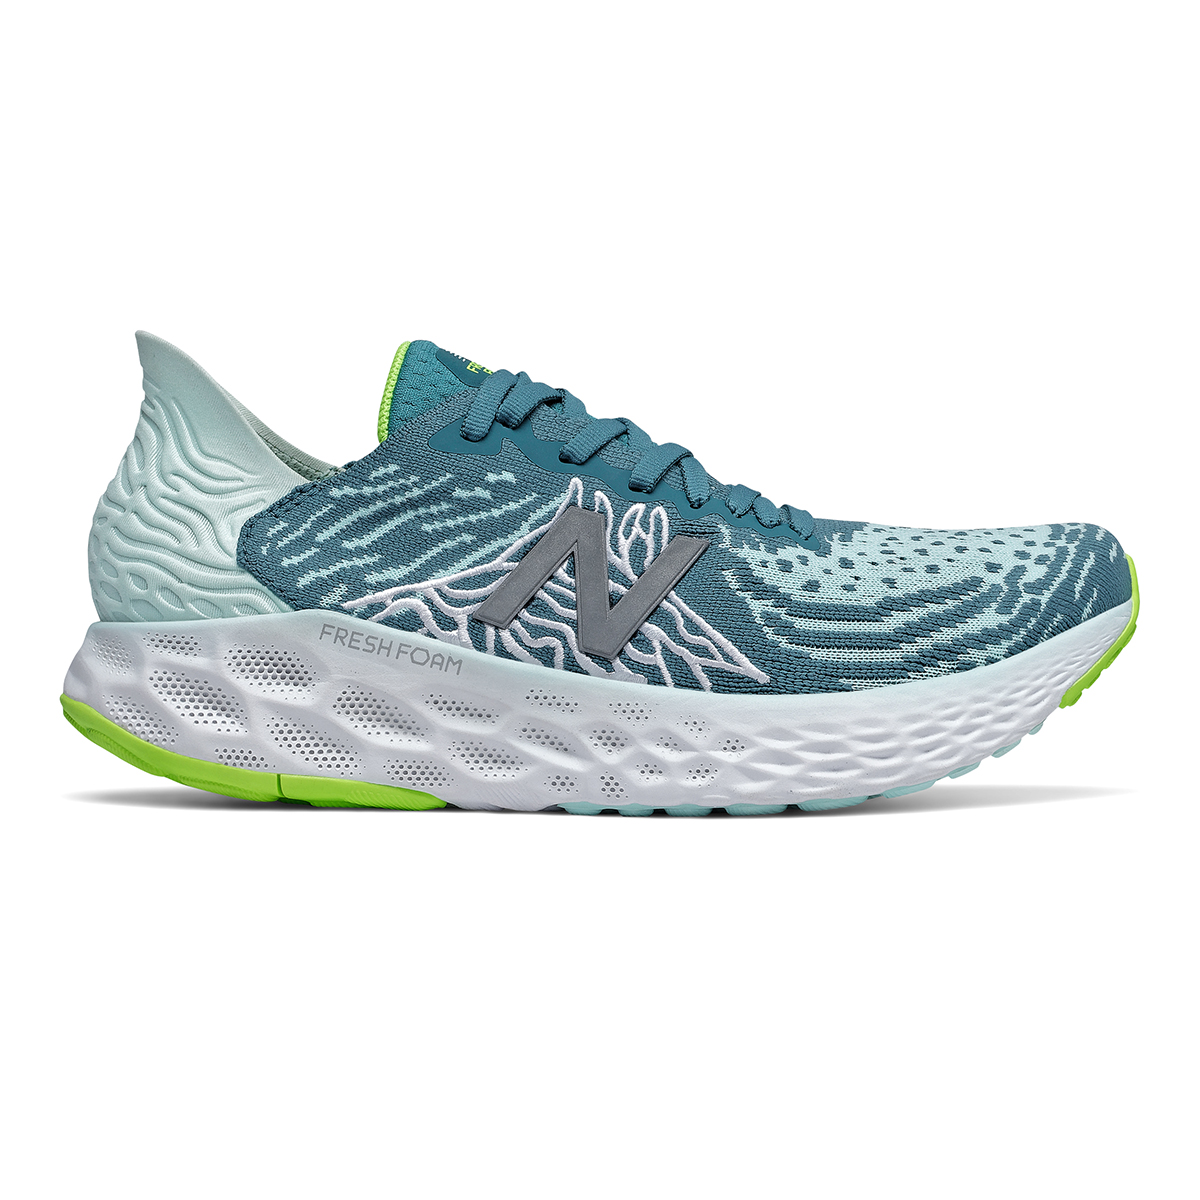 Women's New Balance Fresh Foam 1080v10 Running Shoe - Color: Jet Stream/Glacier - Size: 5 - Width: Regular, Jet Stream/Glacier, large, image 1